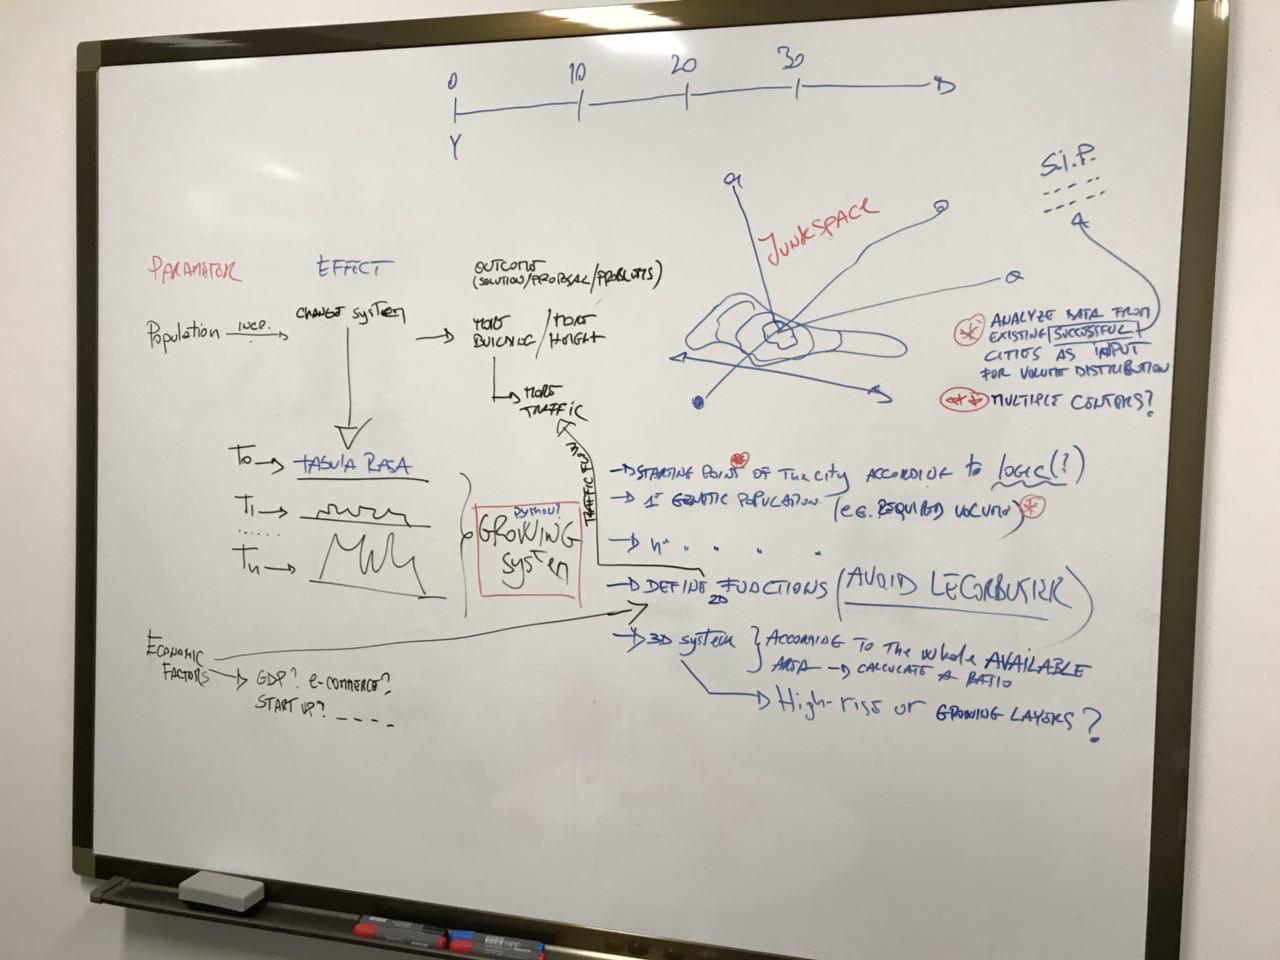 office whiteboard ideas. The Initial Brainstorming Led To First Sketch Of An Idea Modeled On A Classic Whiteboard In Dr Lombardi\u0027s Office: Office Ideas